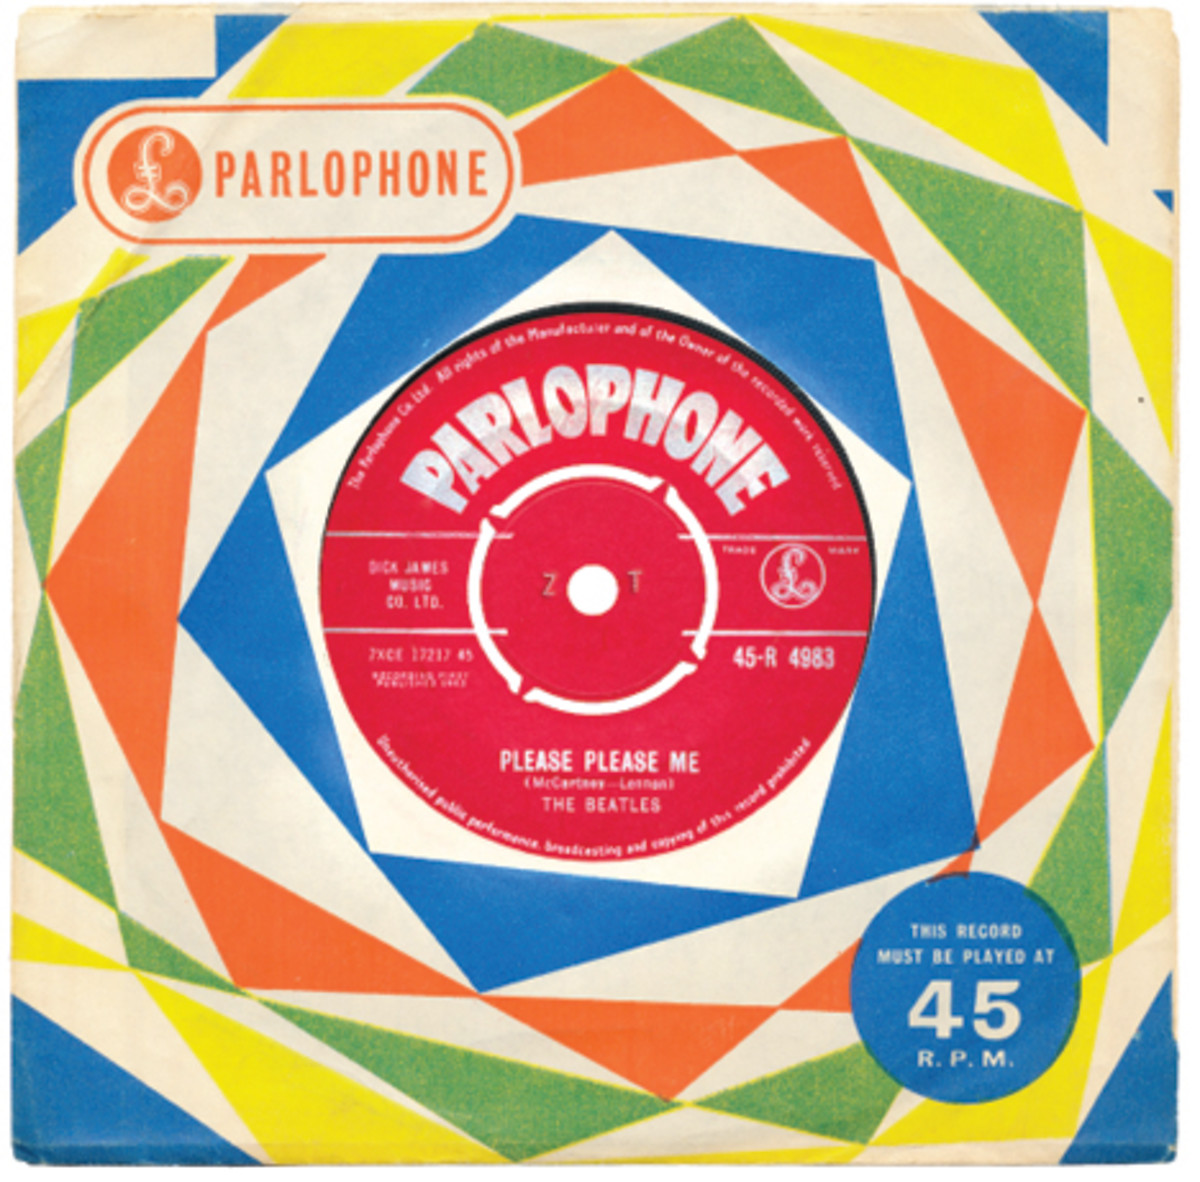 The Beatles Please Please Me b/w Ask Me Why on Parlophone